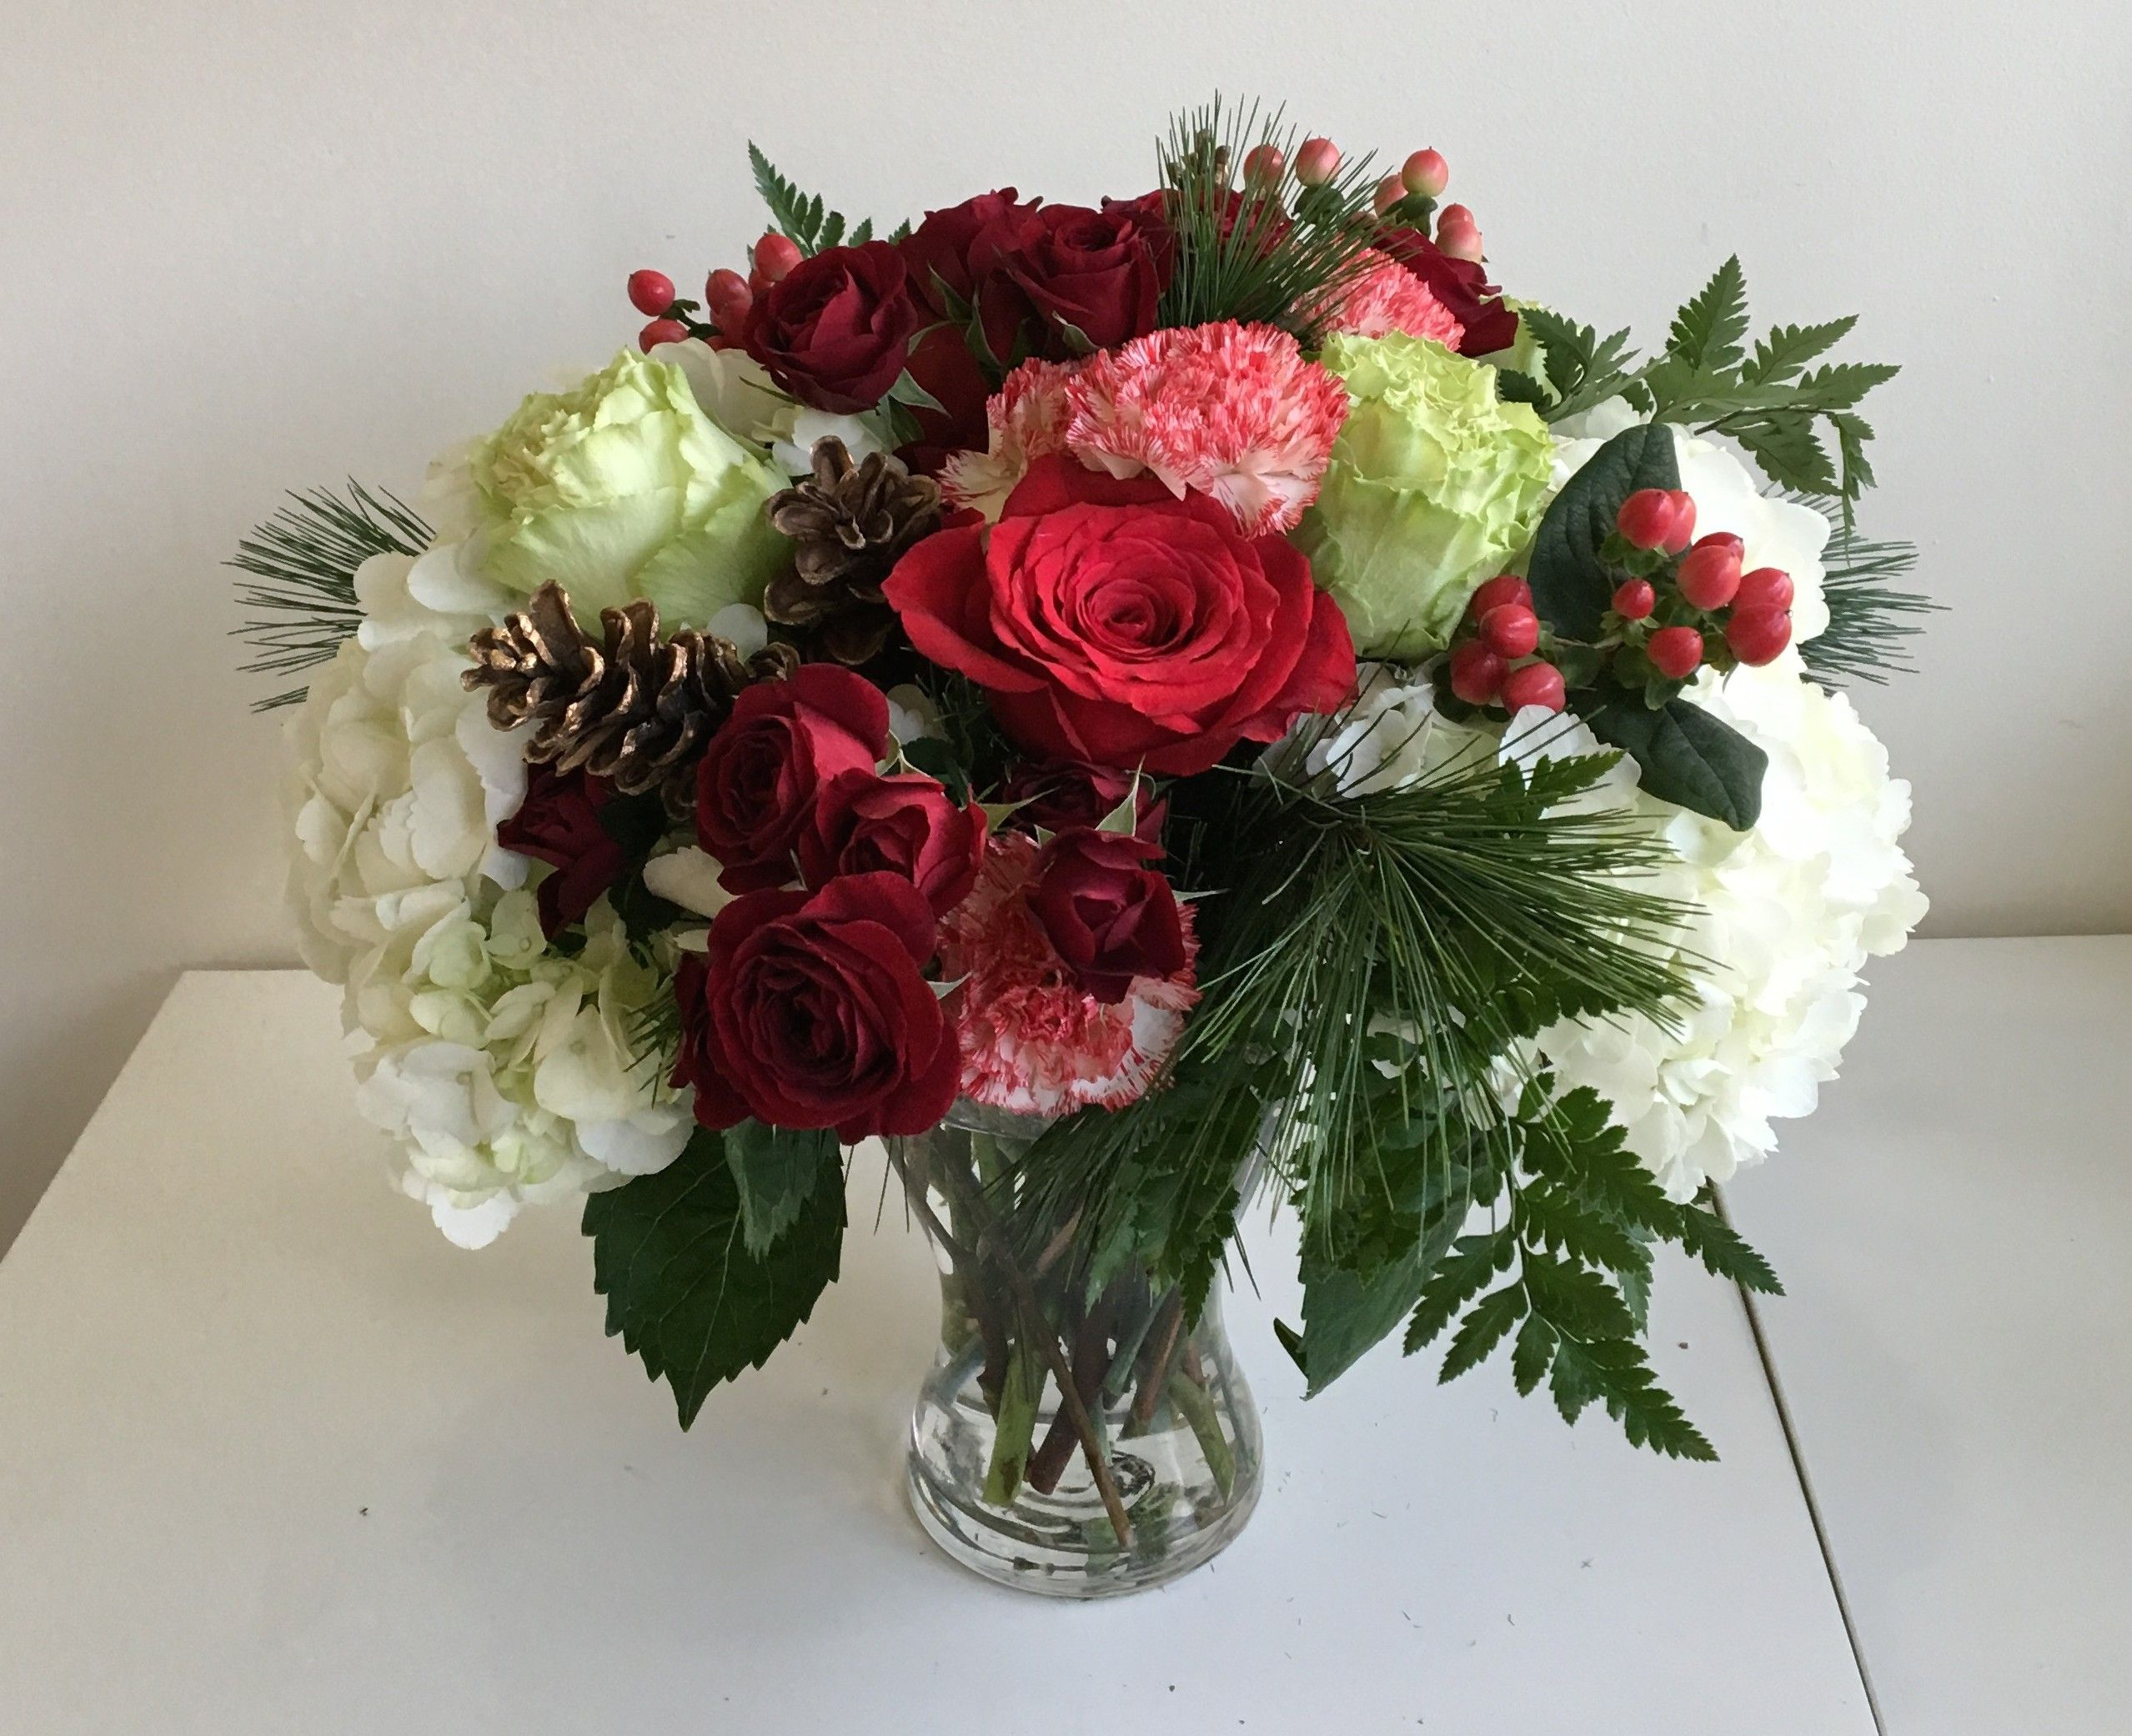 Jingle Bells (With images) Flower delivery, Floral